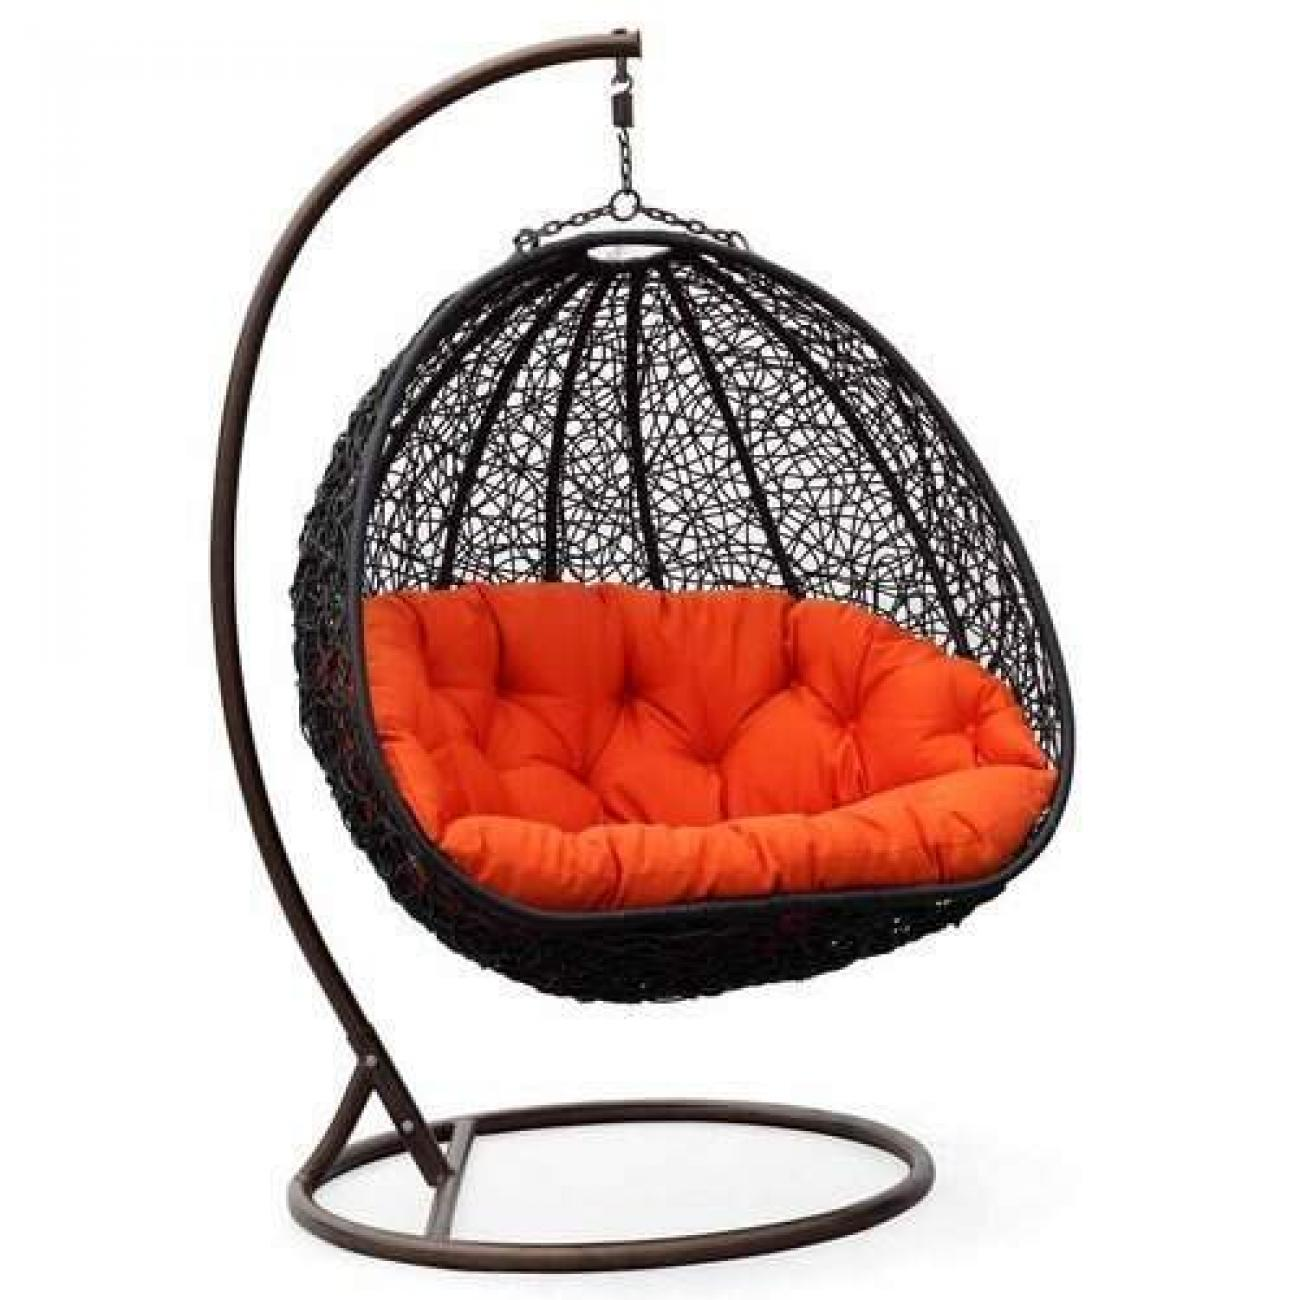 cane-hanging-swing-chair-329313935-zb2fd_(1)